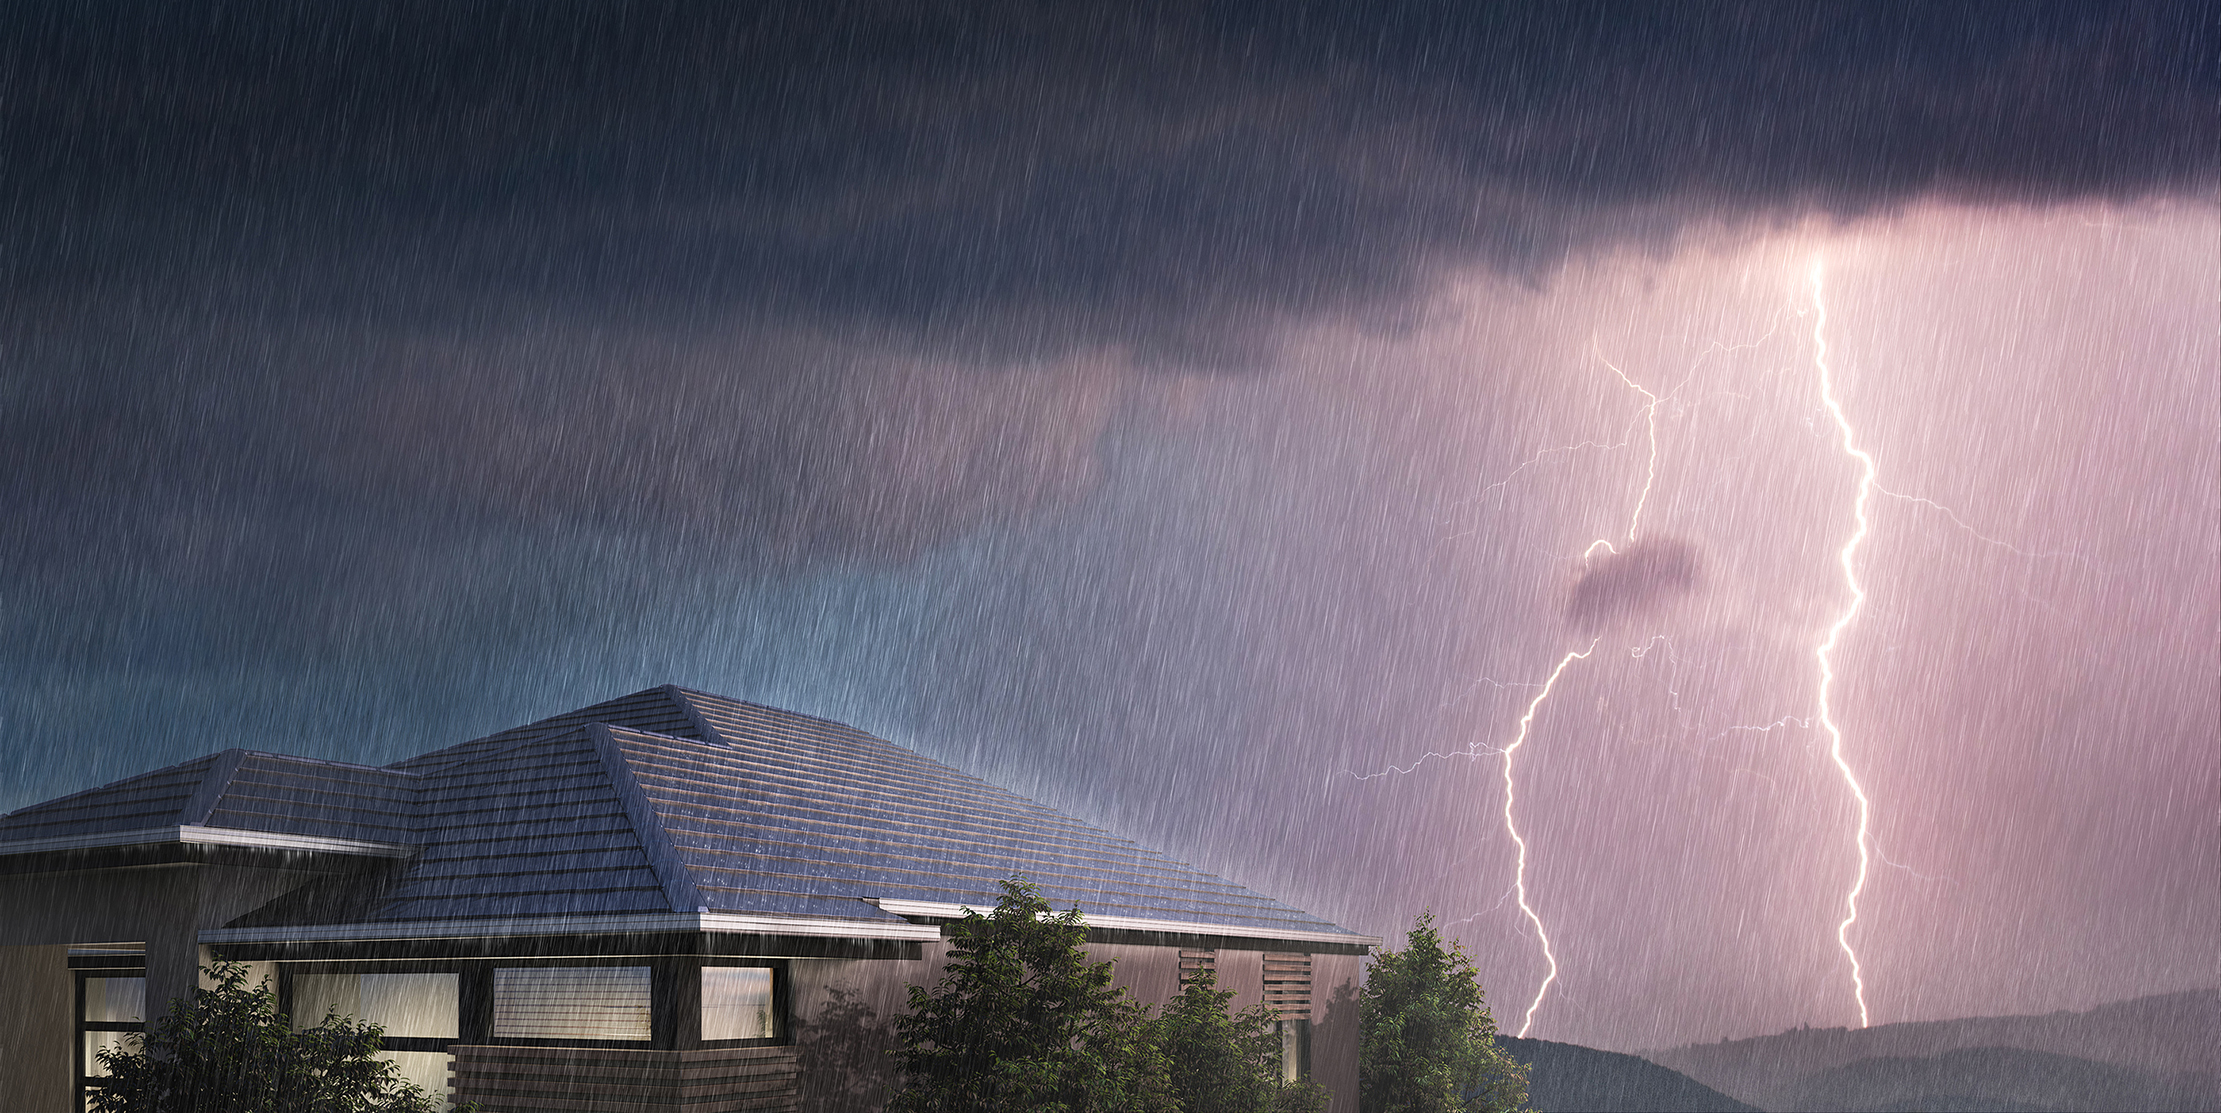 How tiles win in the war against storms